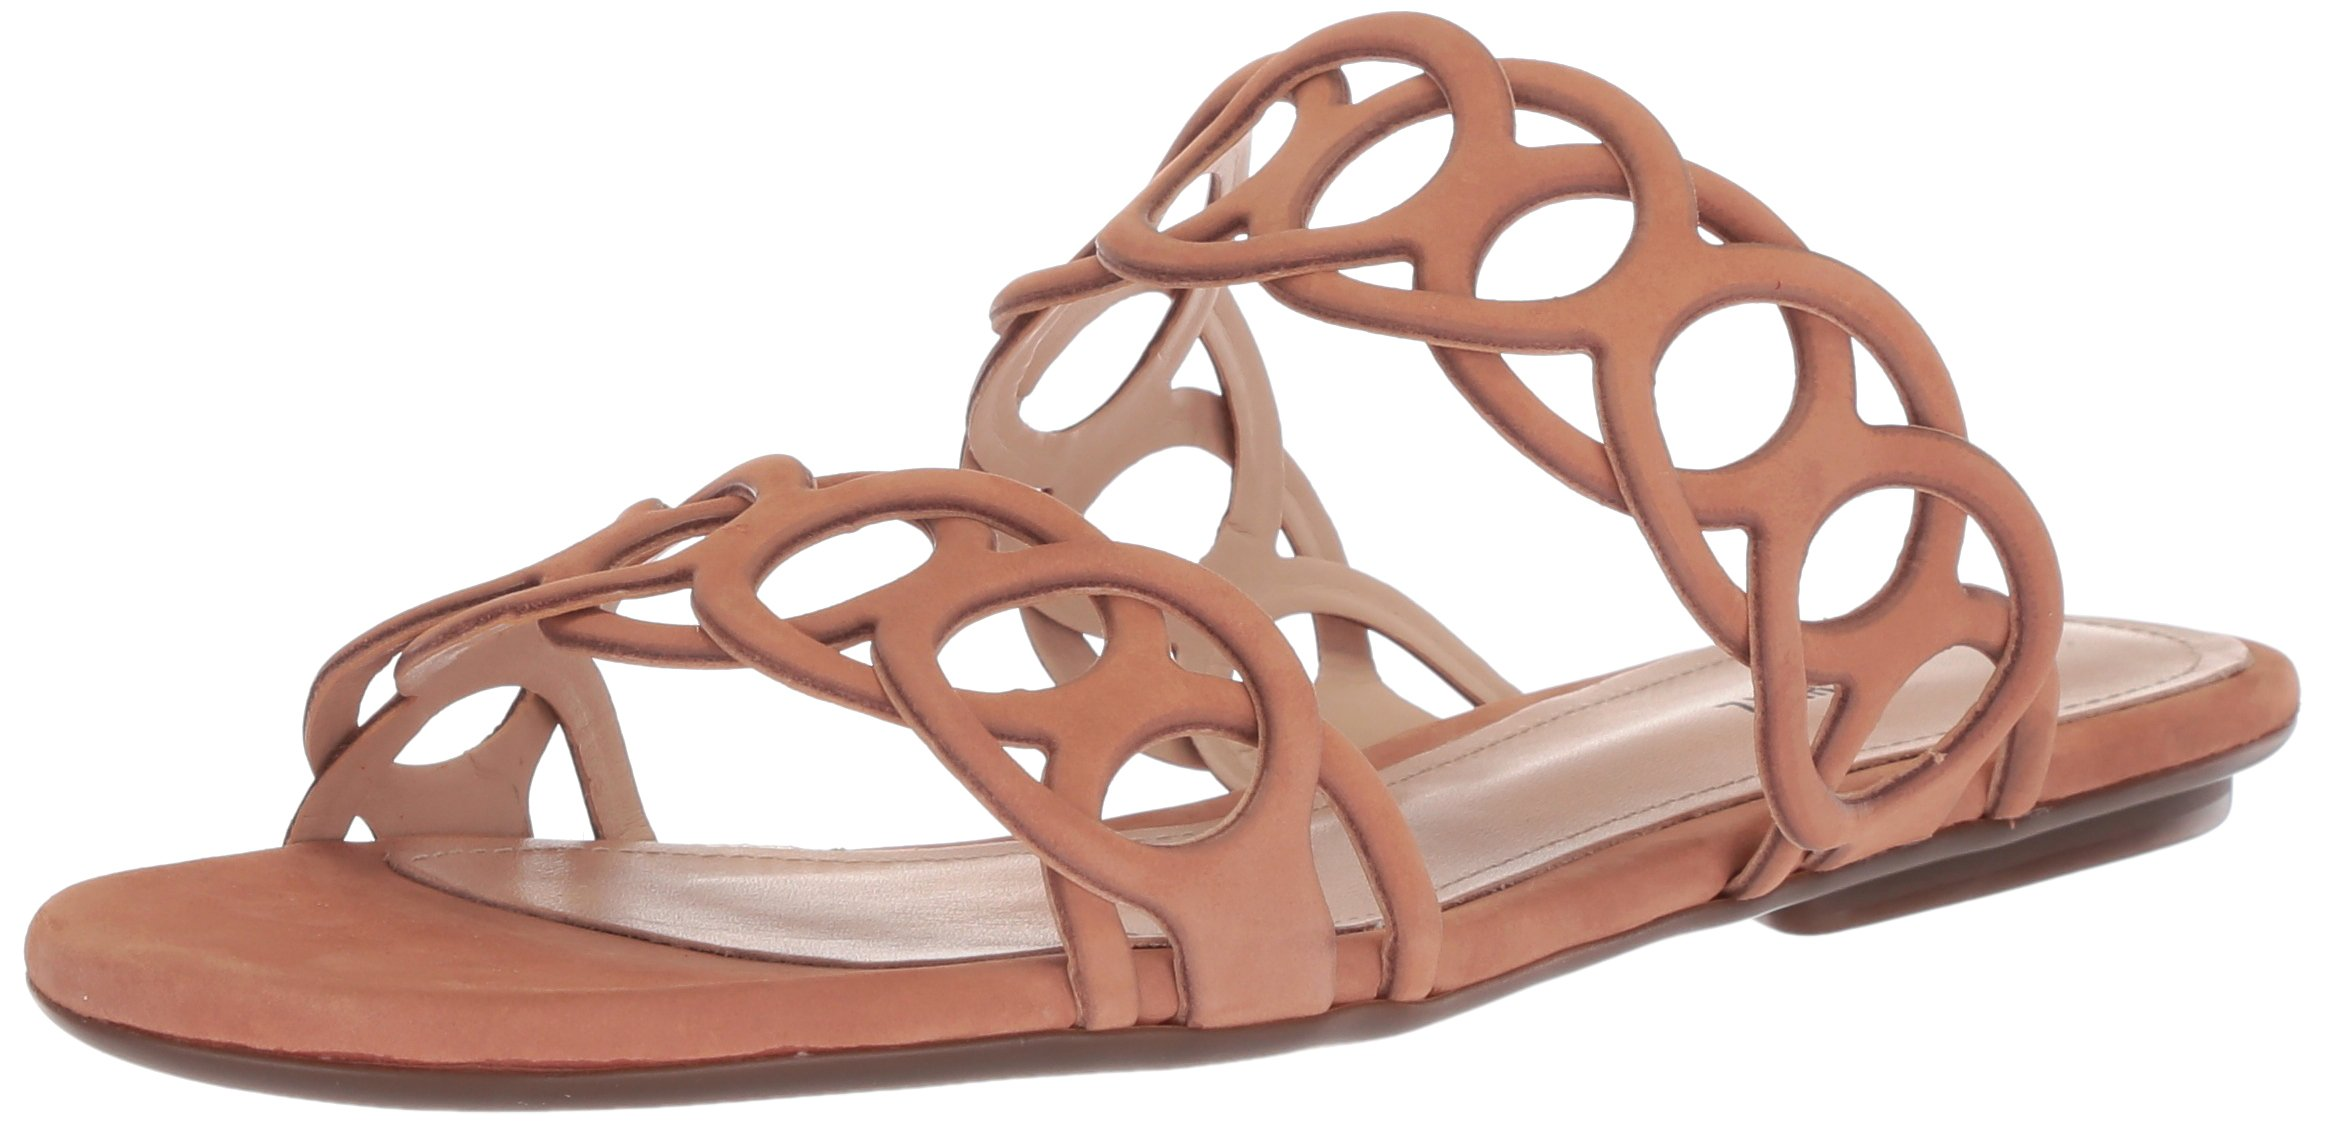 SCHUTZ Women's Yaslin Slide Sandal, Toasted Nut, 8 M US